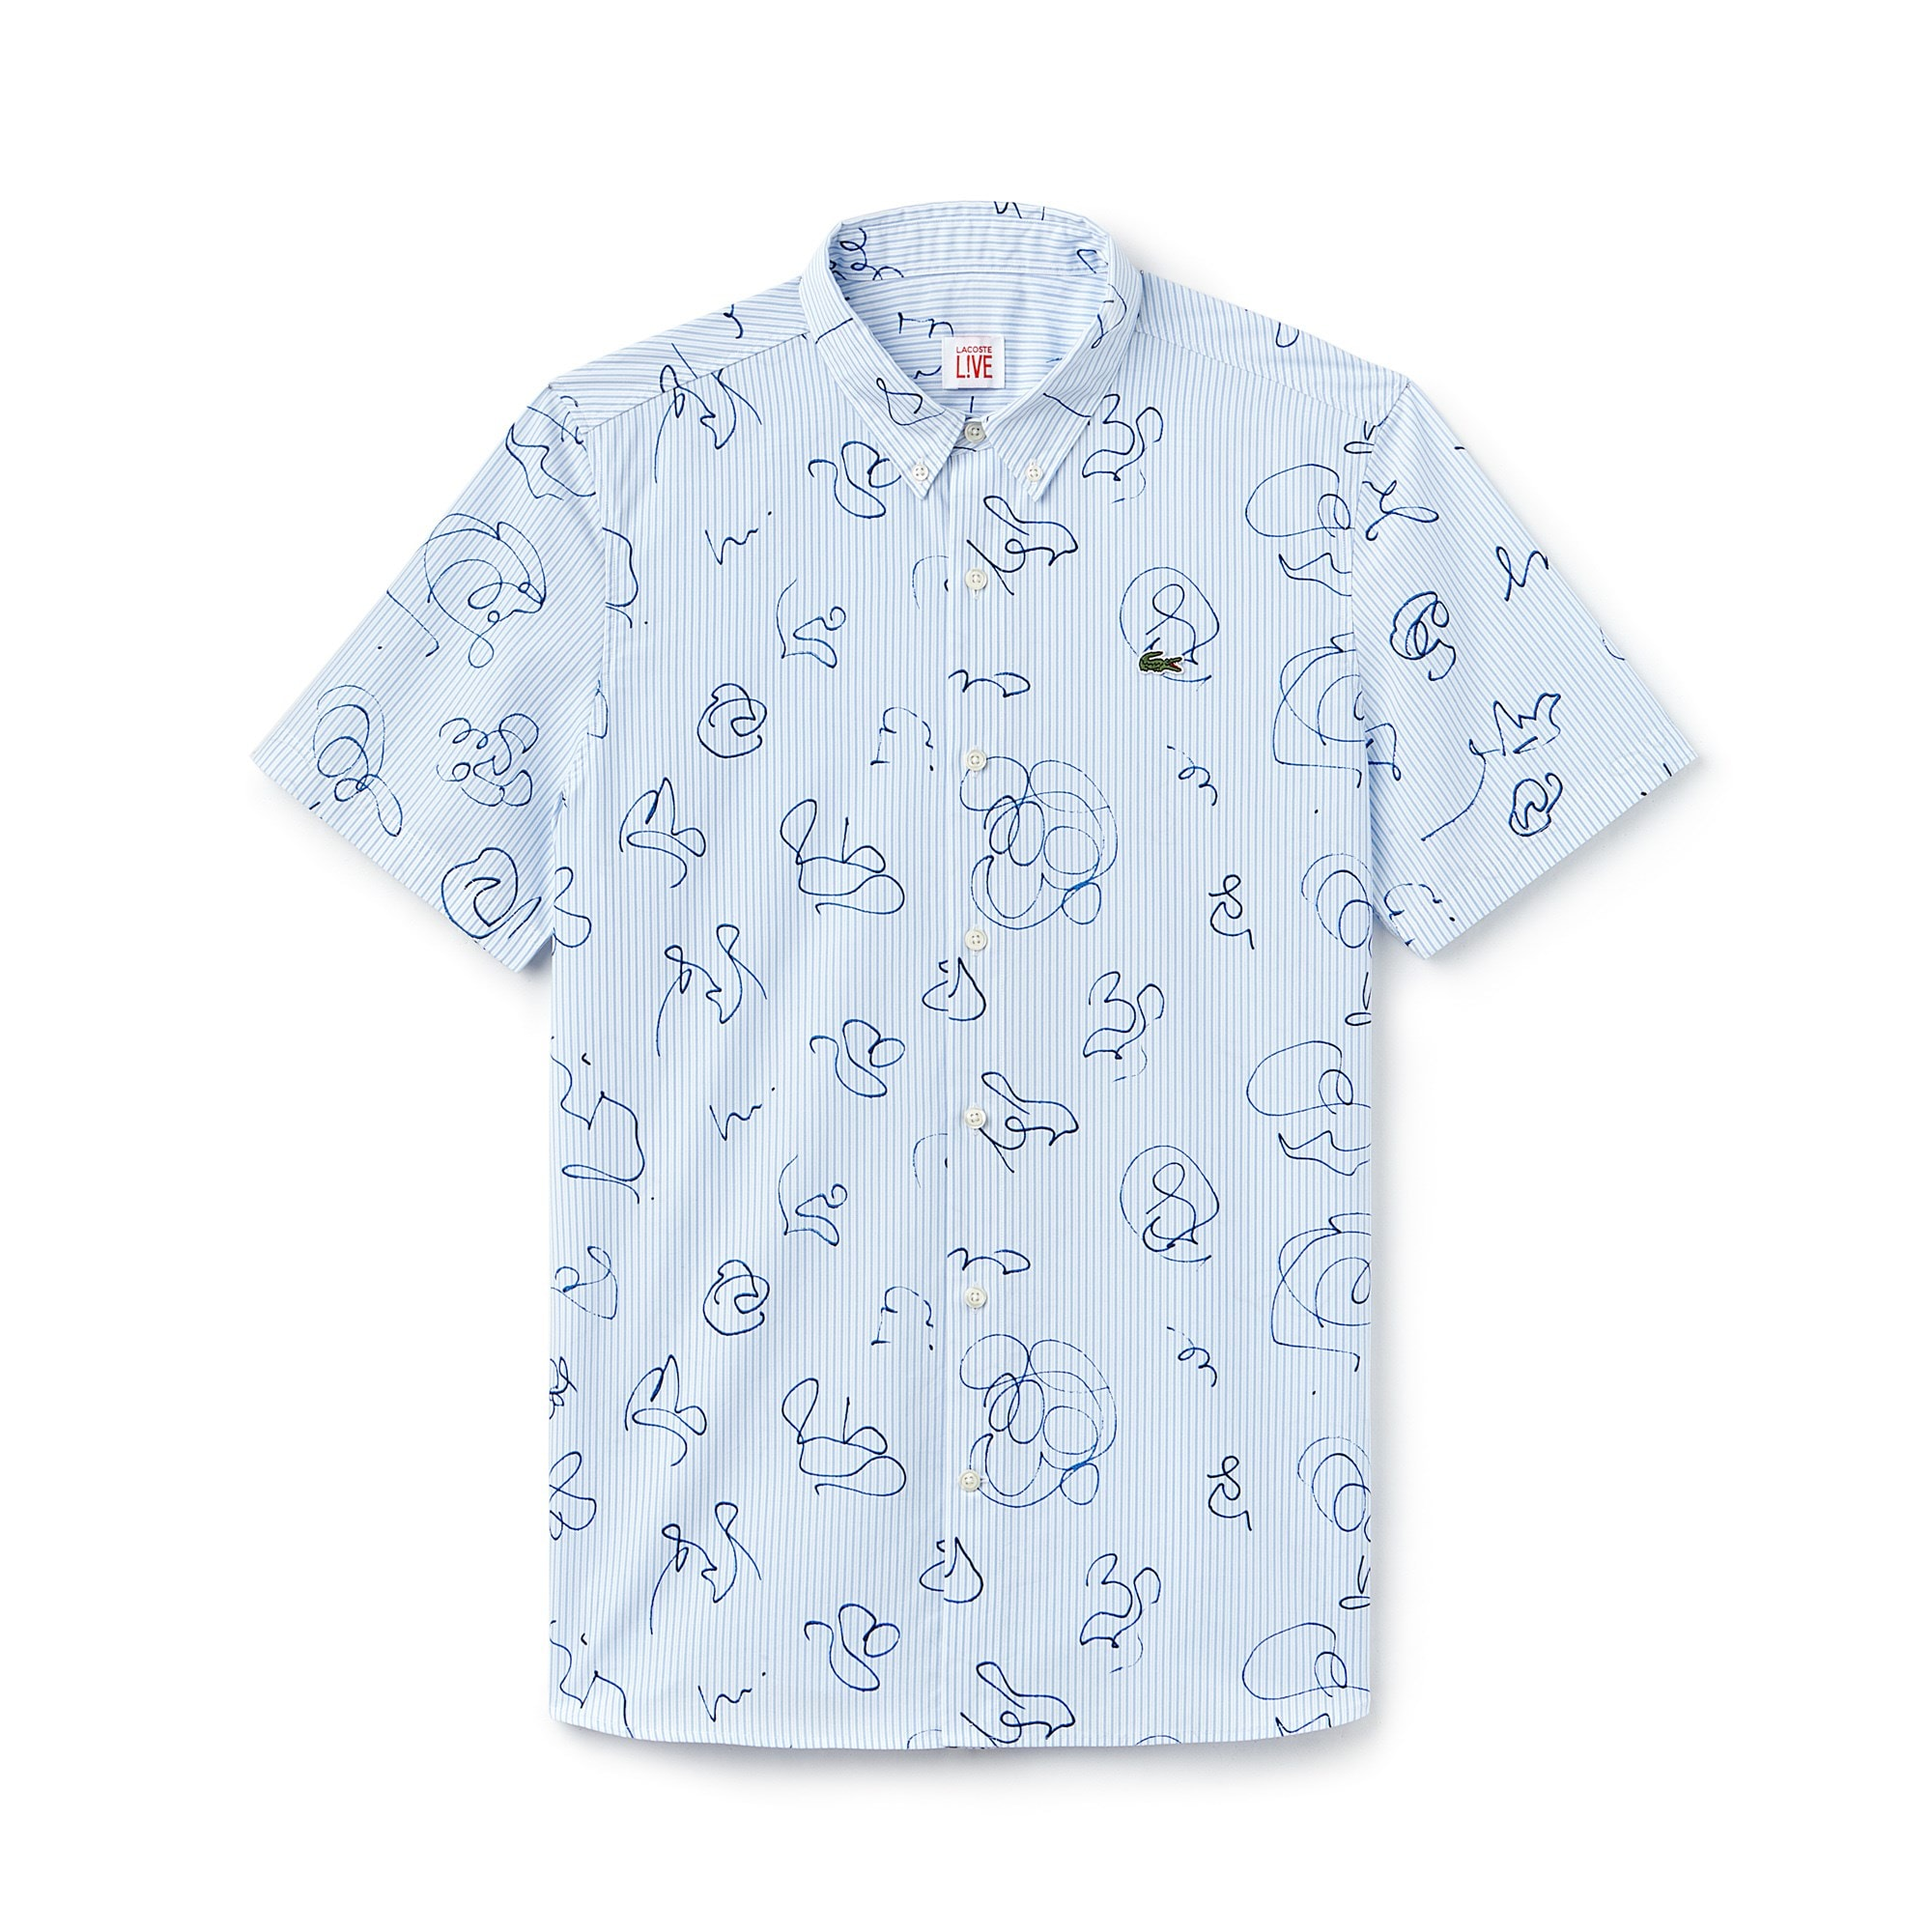 Men's Lacoste LIVE Striped Print Poplin Shirt